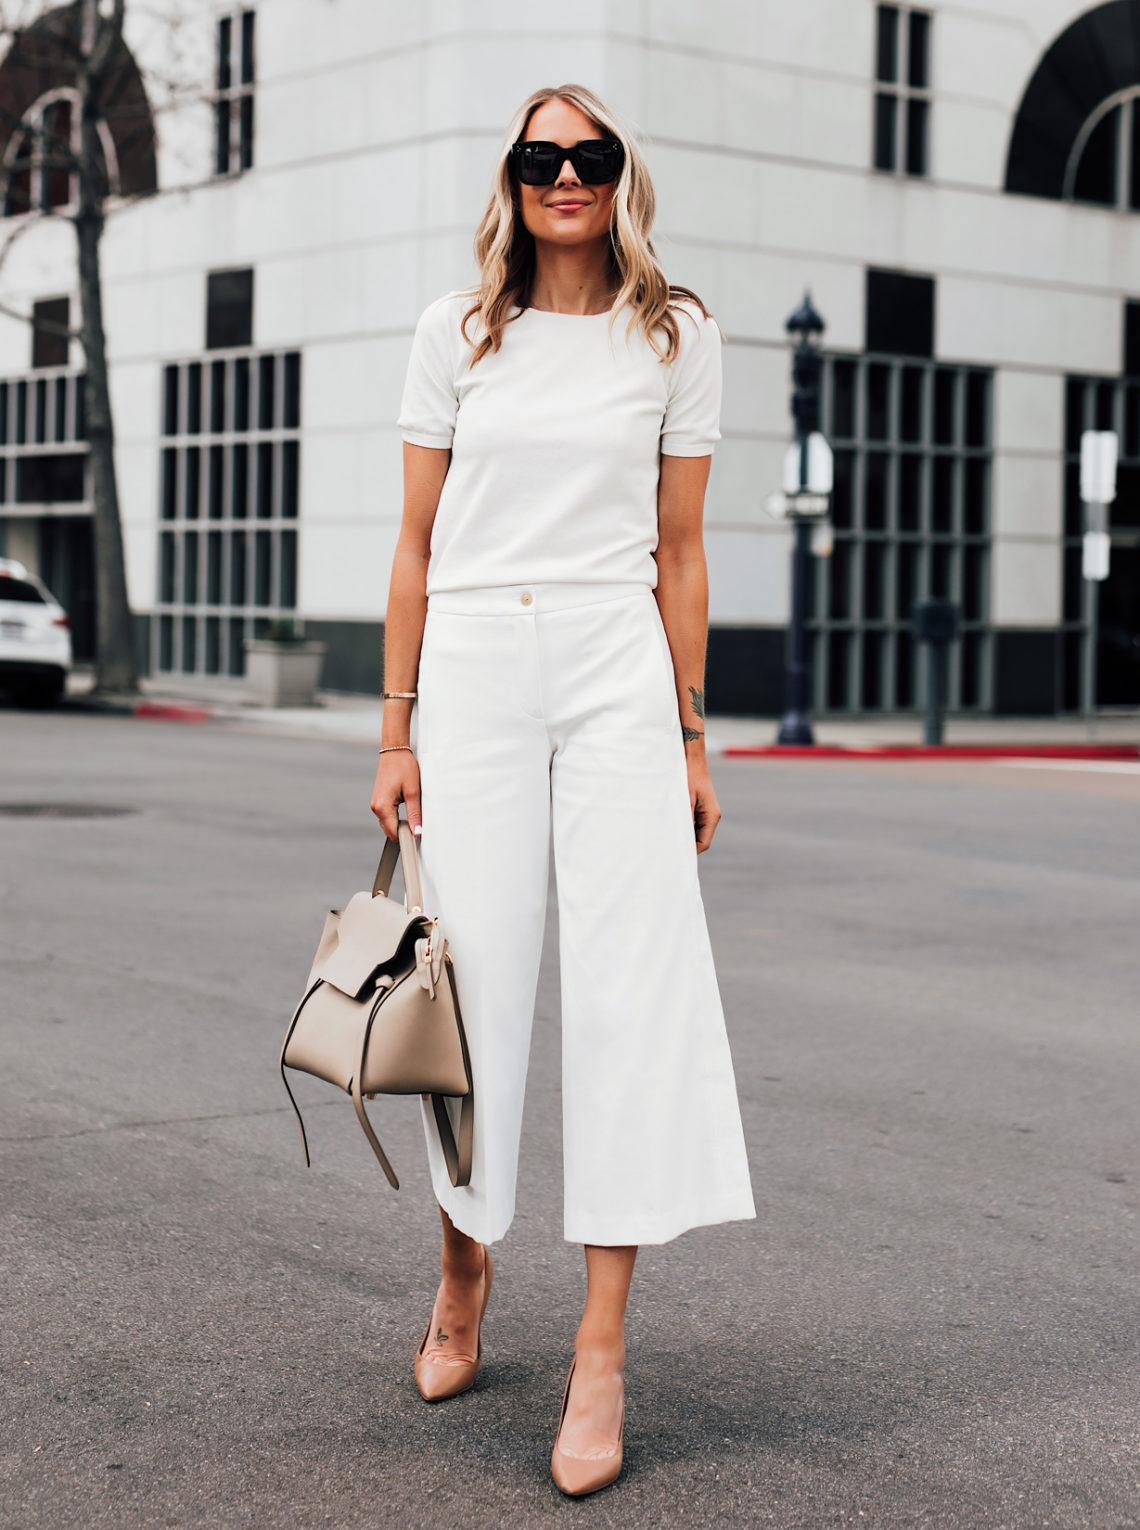 Fashion Jackson Wearing Ann Taylor White Short Sleeve Sweater Ann Taylor White Wide Leg Cropped Pants Nude Pumps Featured Image